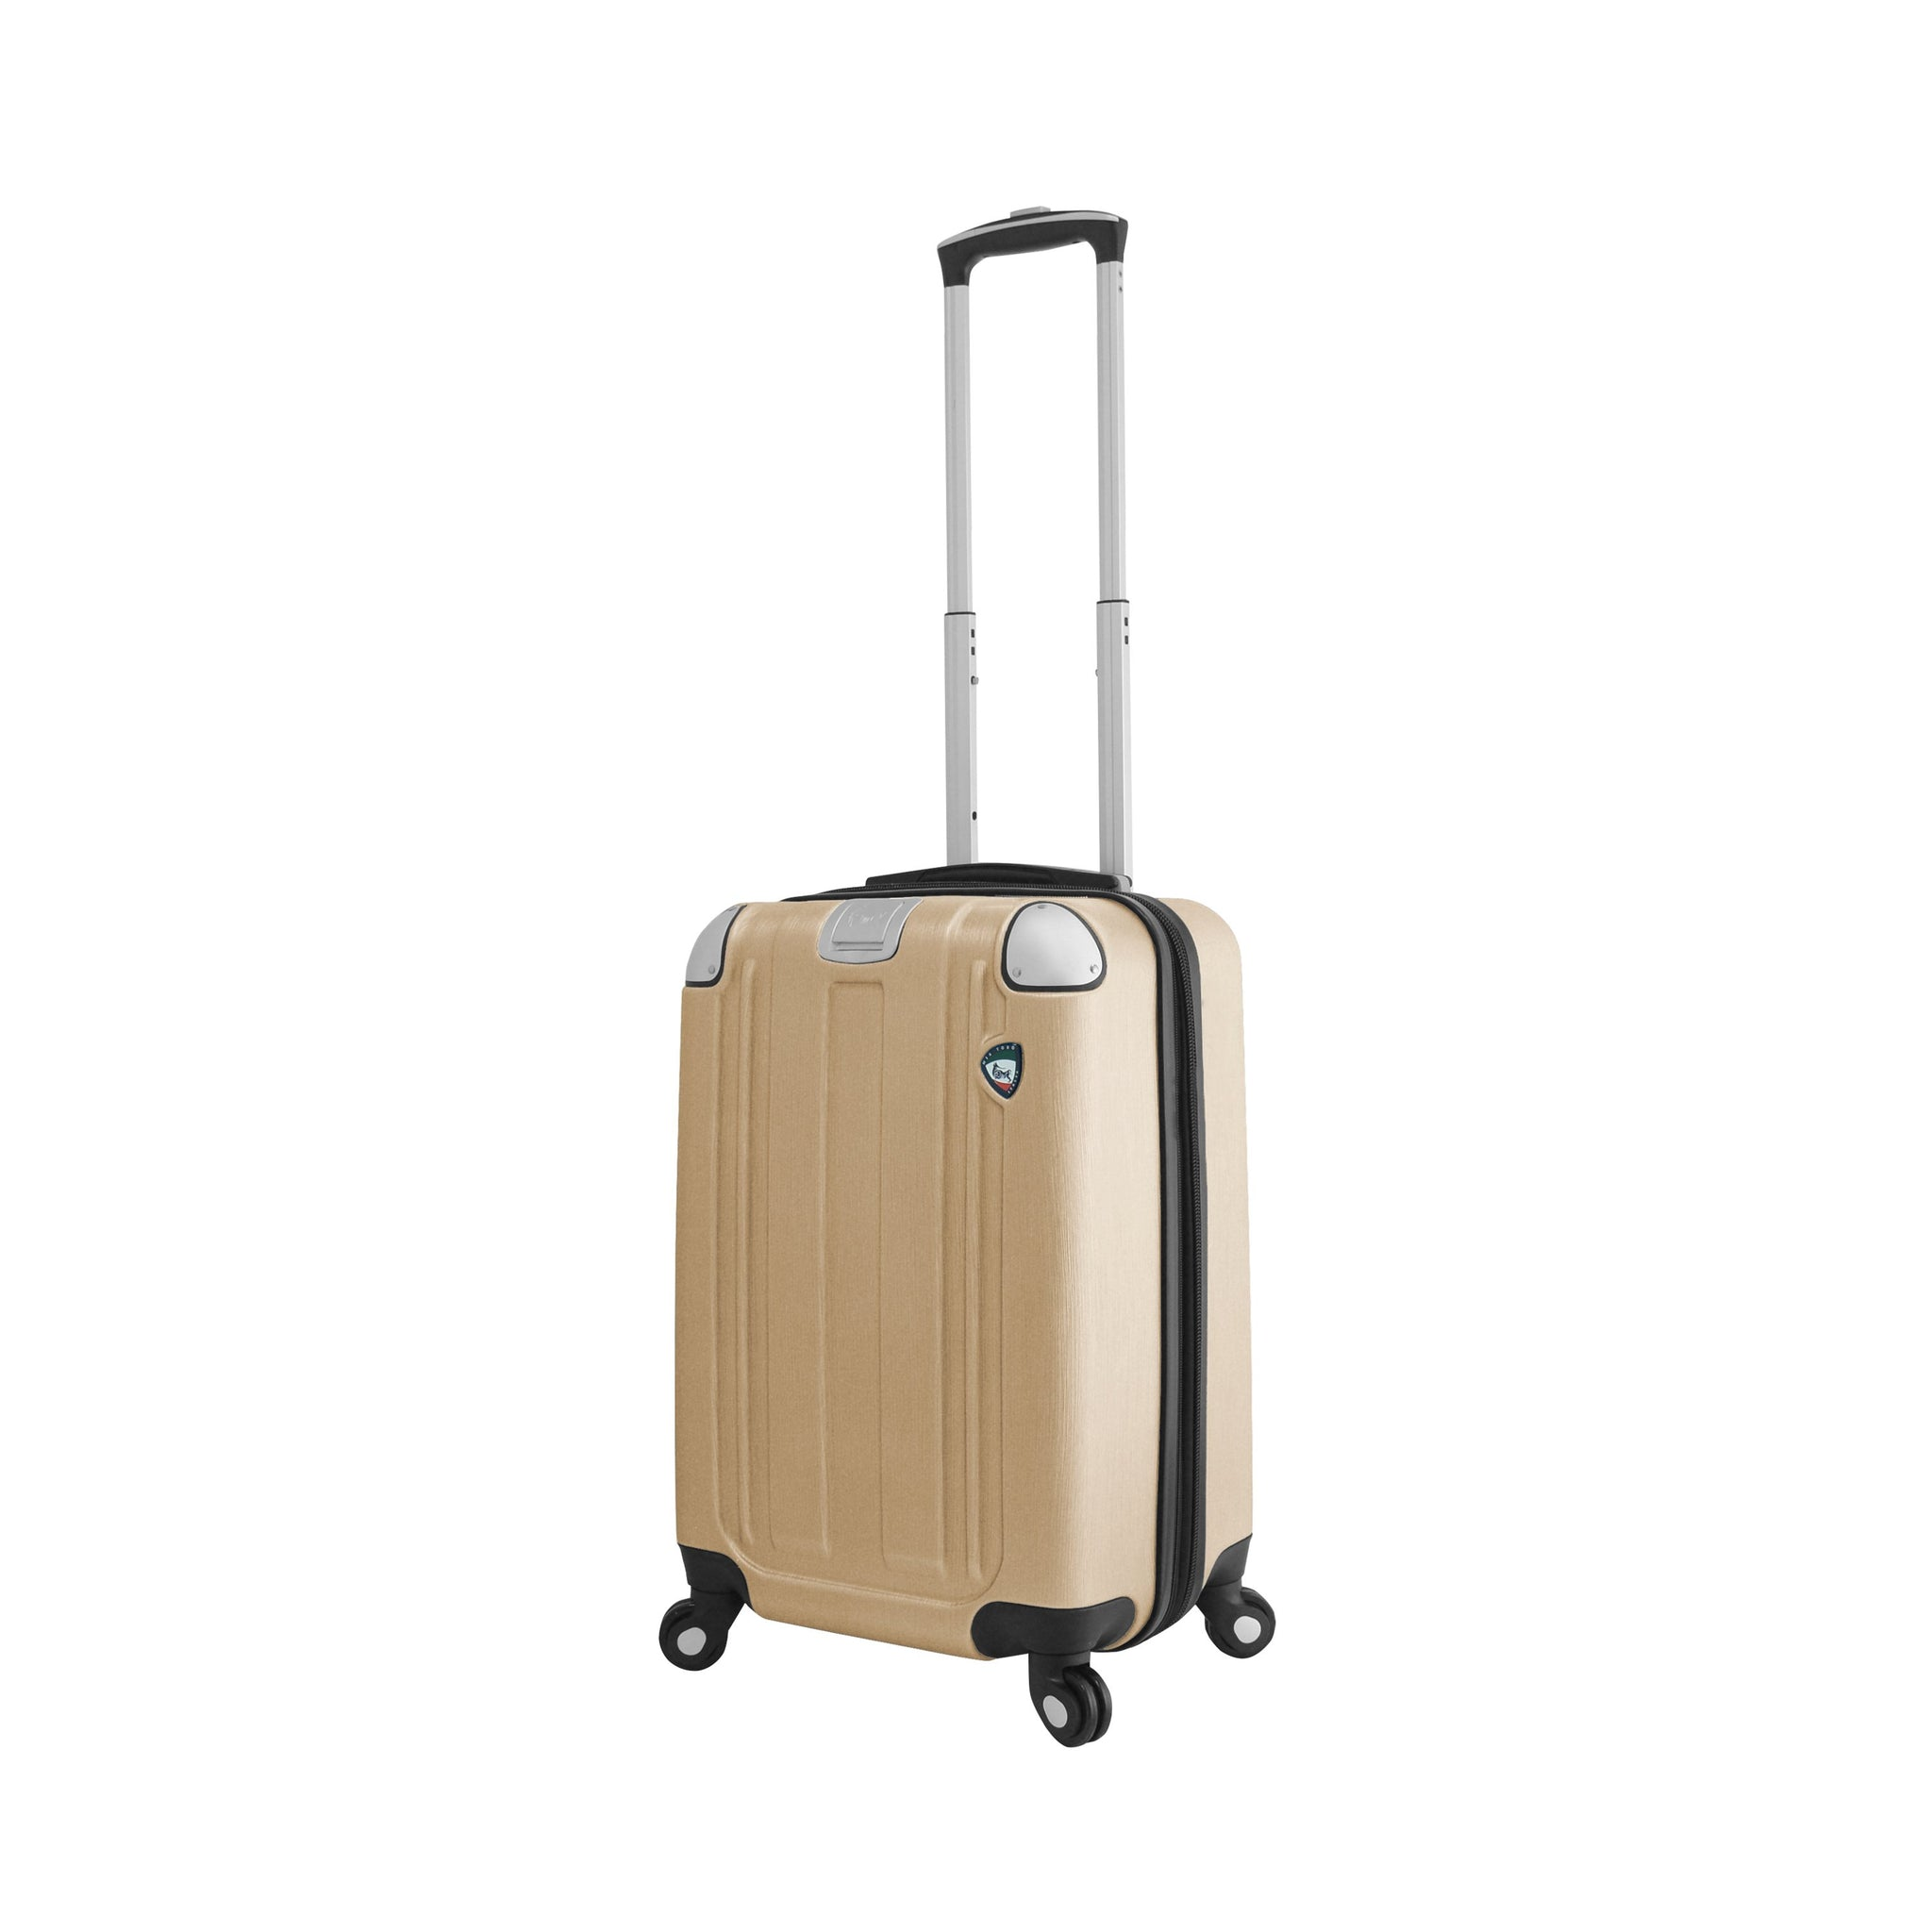 "Accera Hardside 24"" Spinner Luggage"